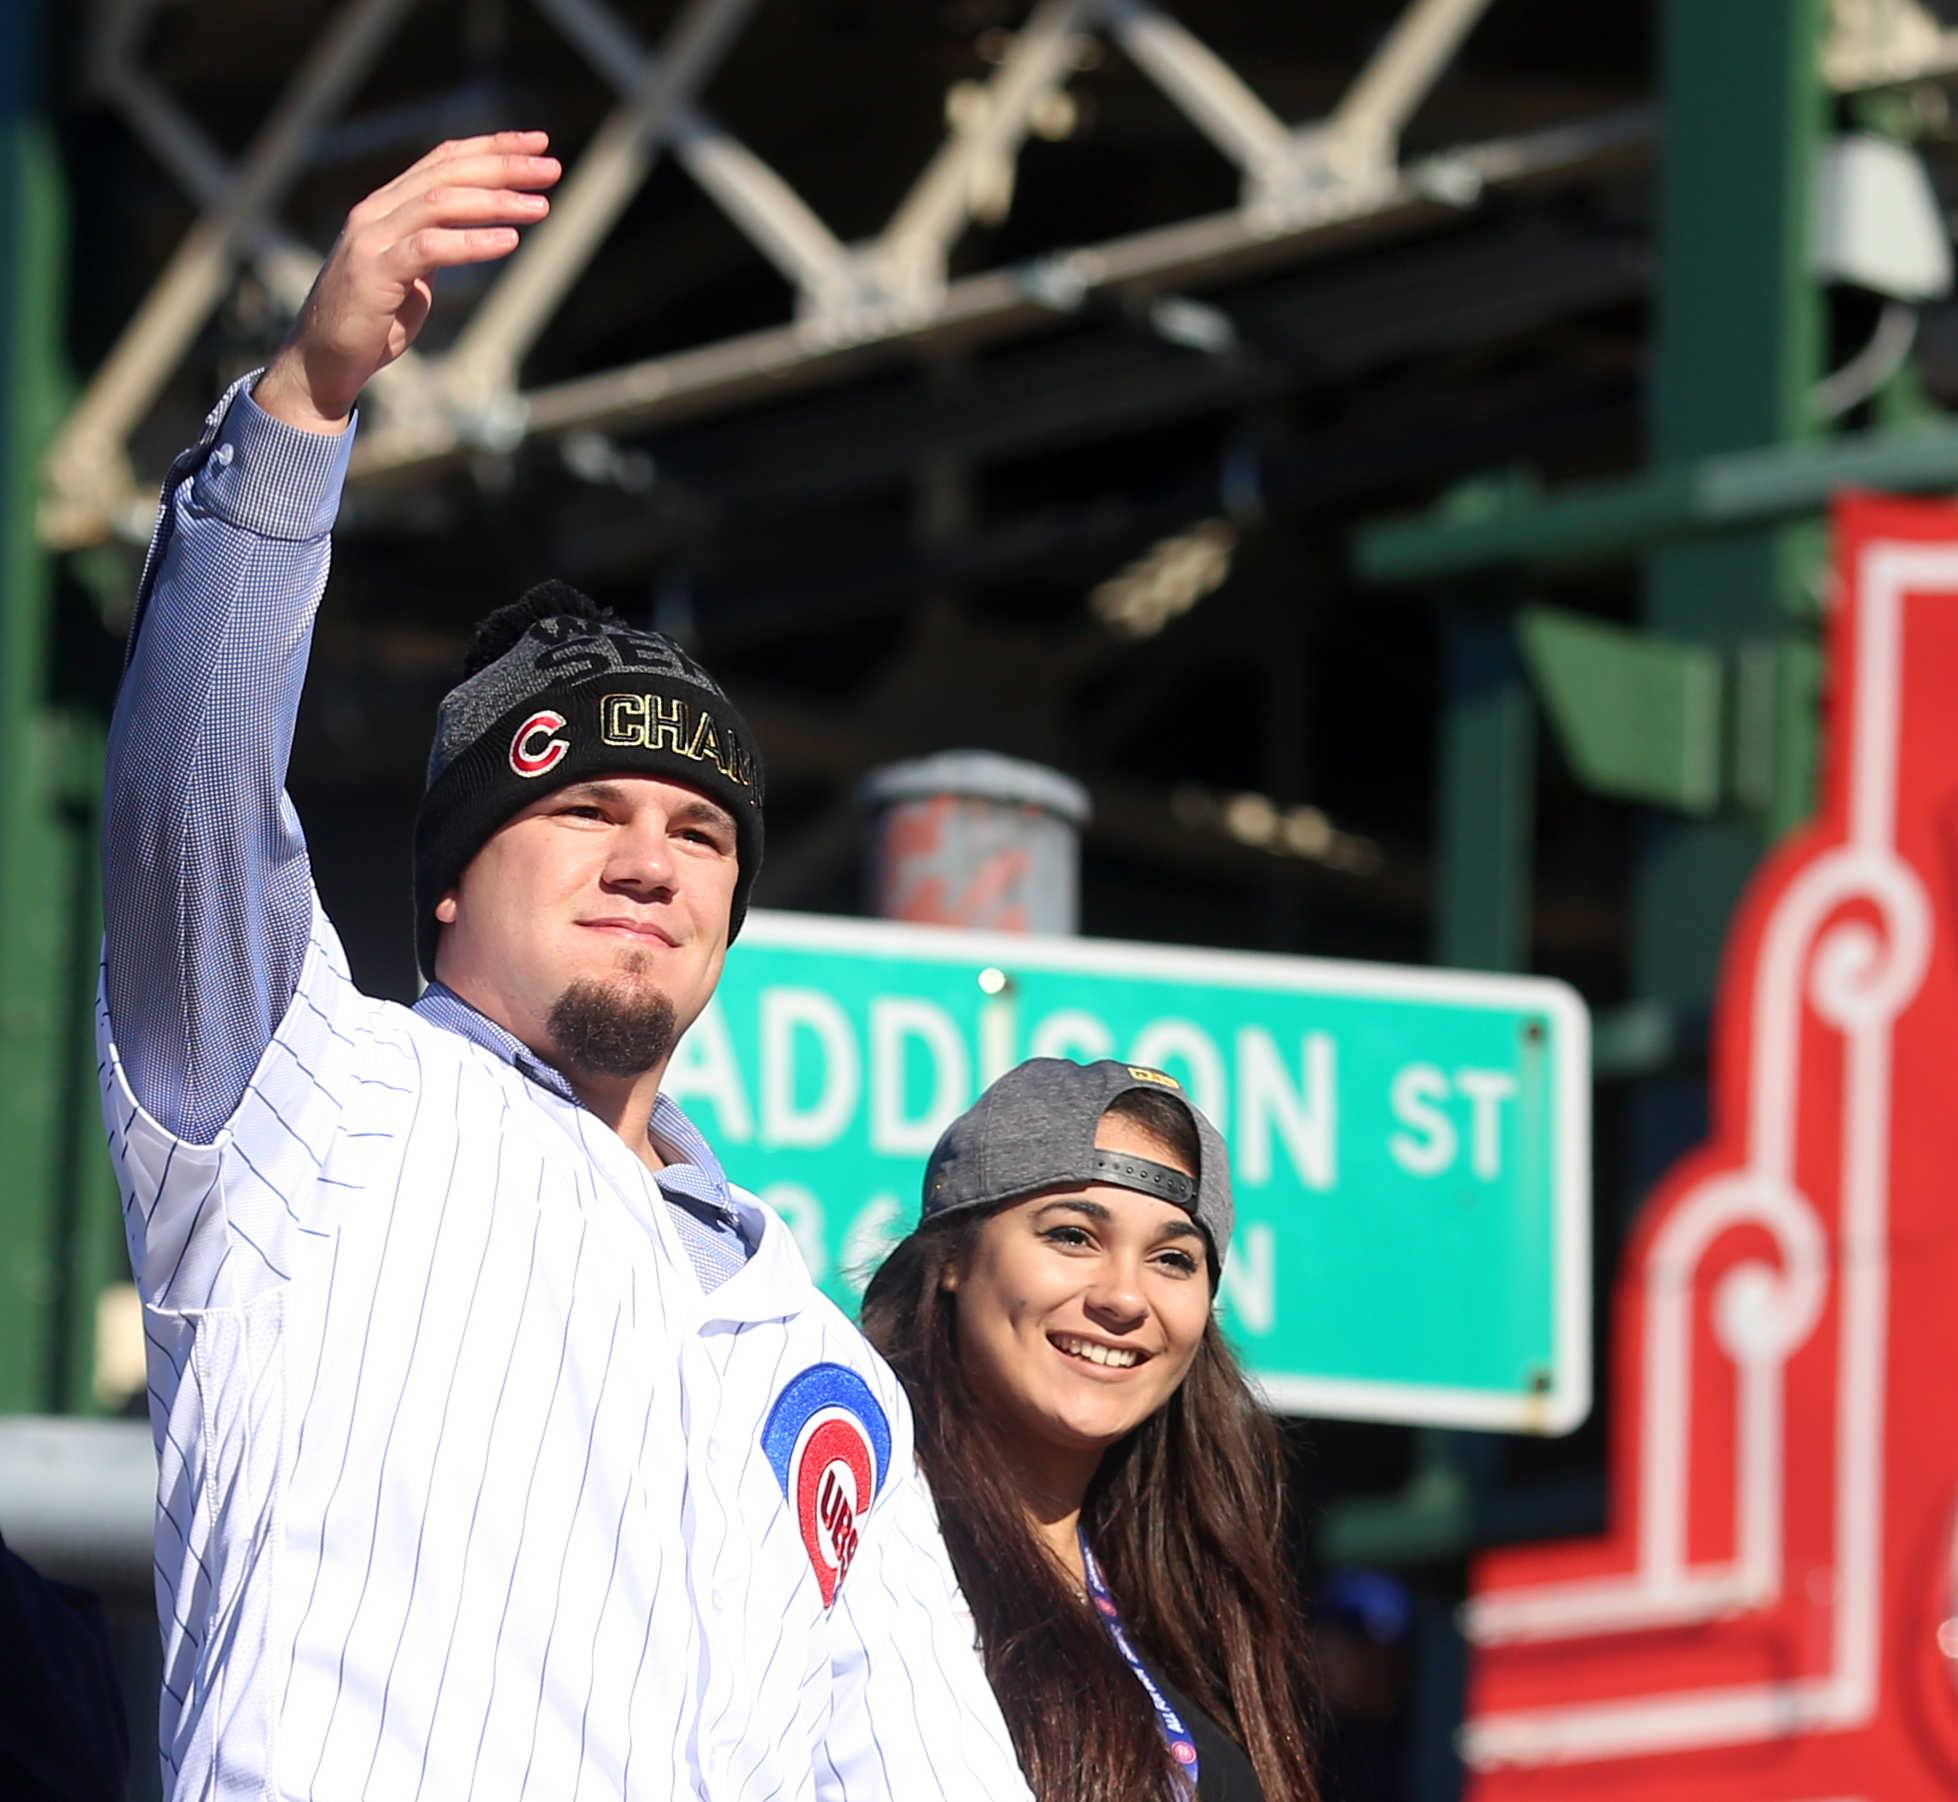 Kyle Schwarber gets the crowd revved up as the World Series champion Chicago Cubs enjoy the start of a parade that began at Wrigley Field.